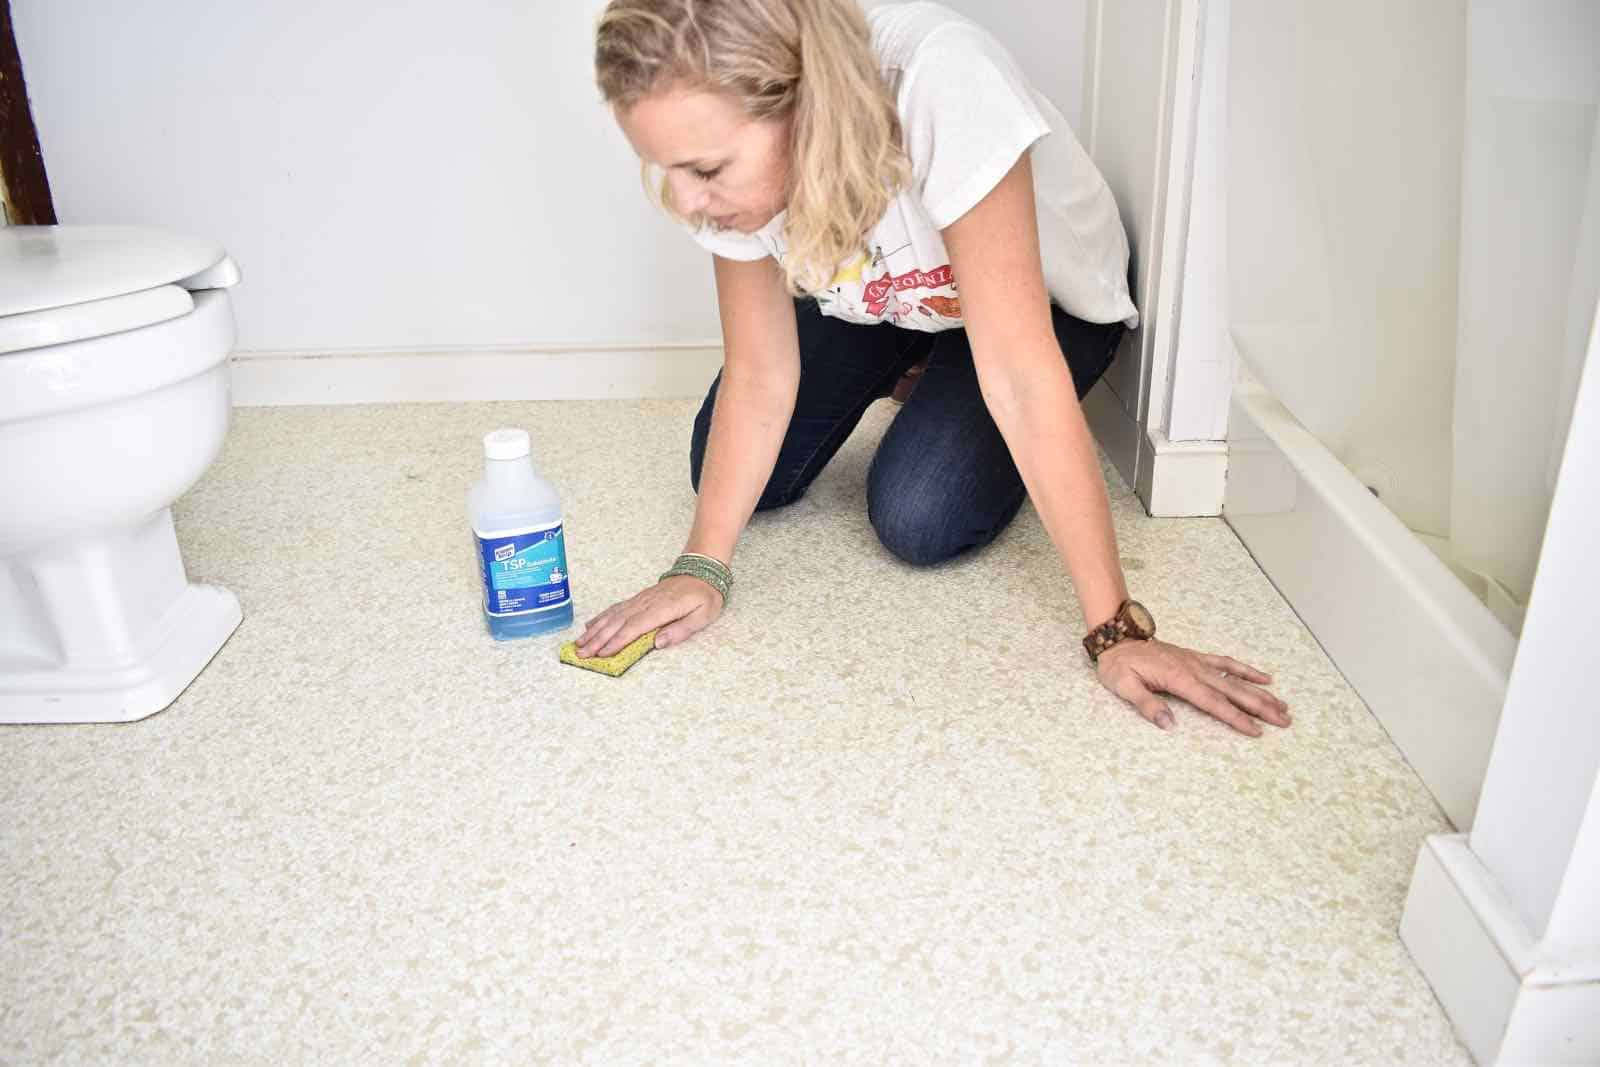 cleaning the bathroom floor with TSP